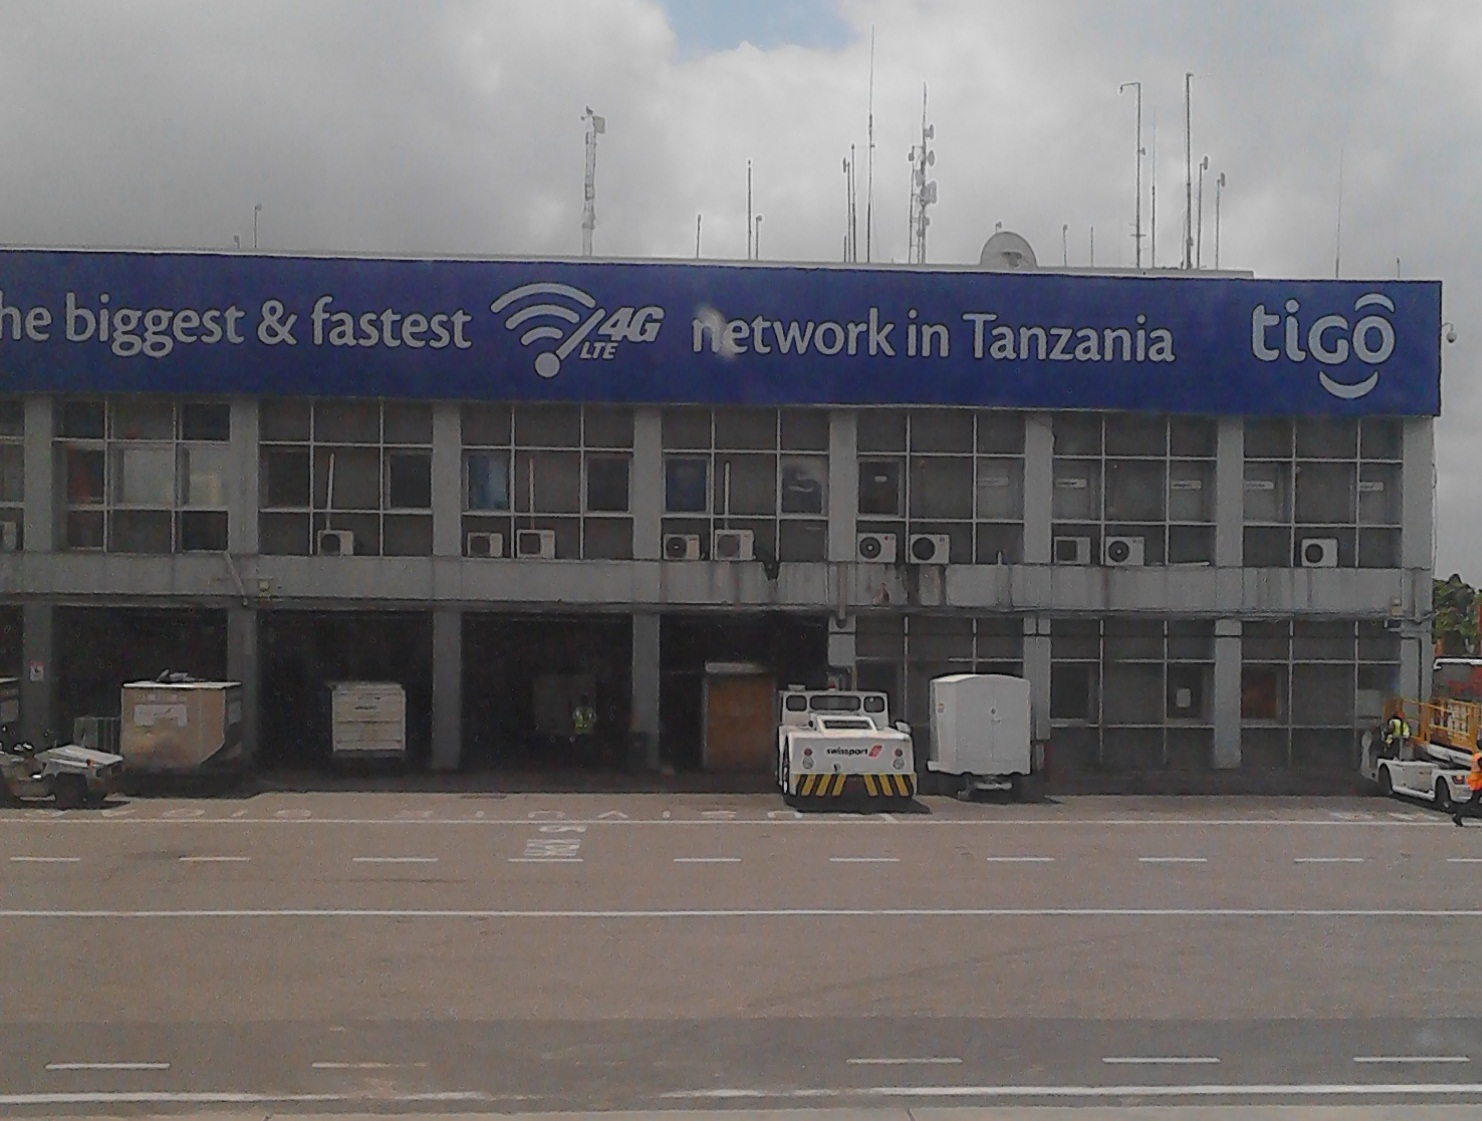 Let's Learn about MIC Tanzania Limited (Tigo)